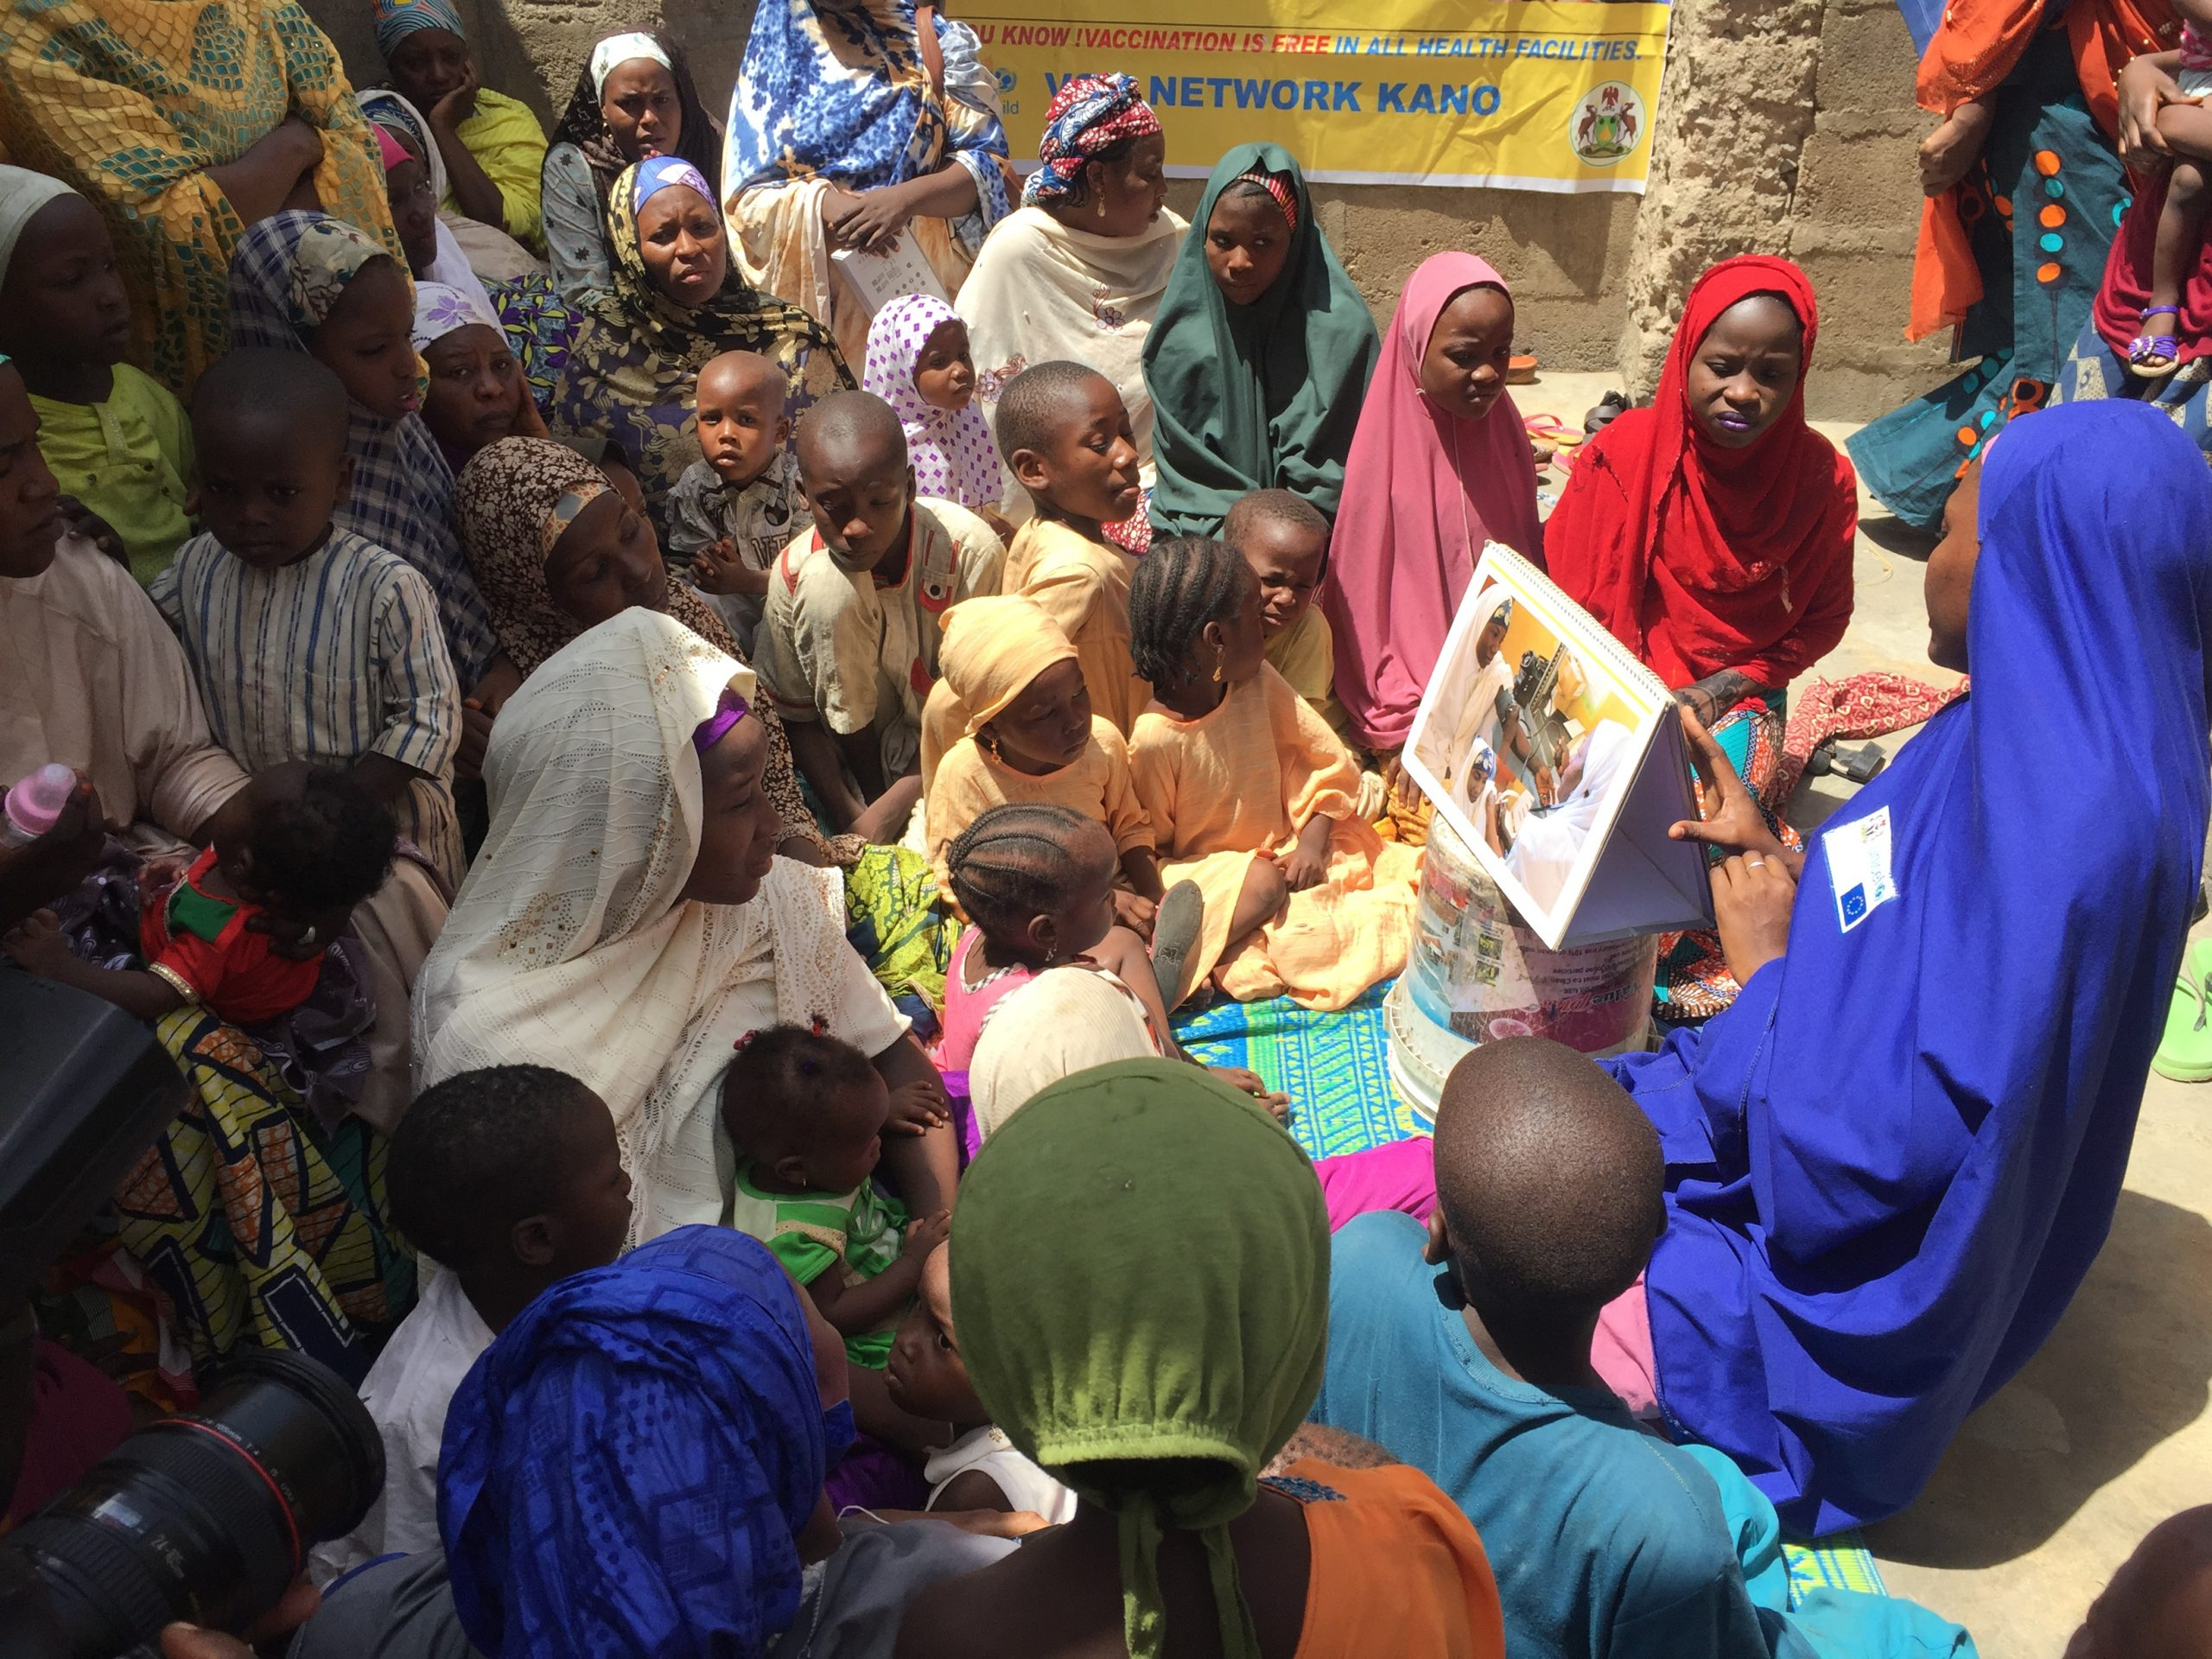 As Imam, king and family gatherings are wiping out polio in Nigeria